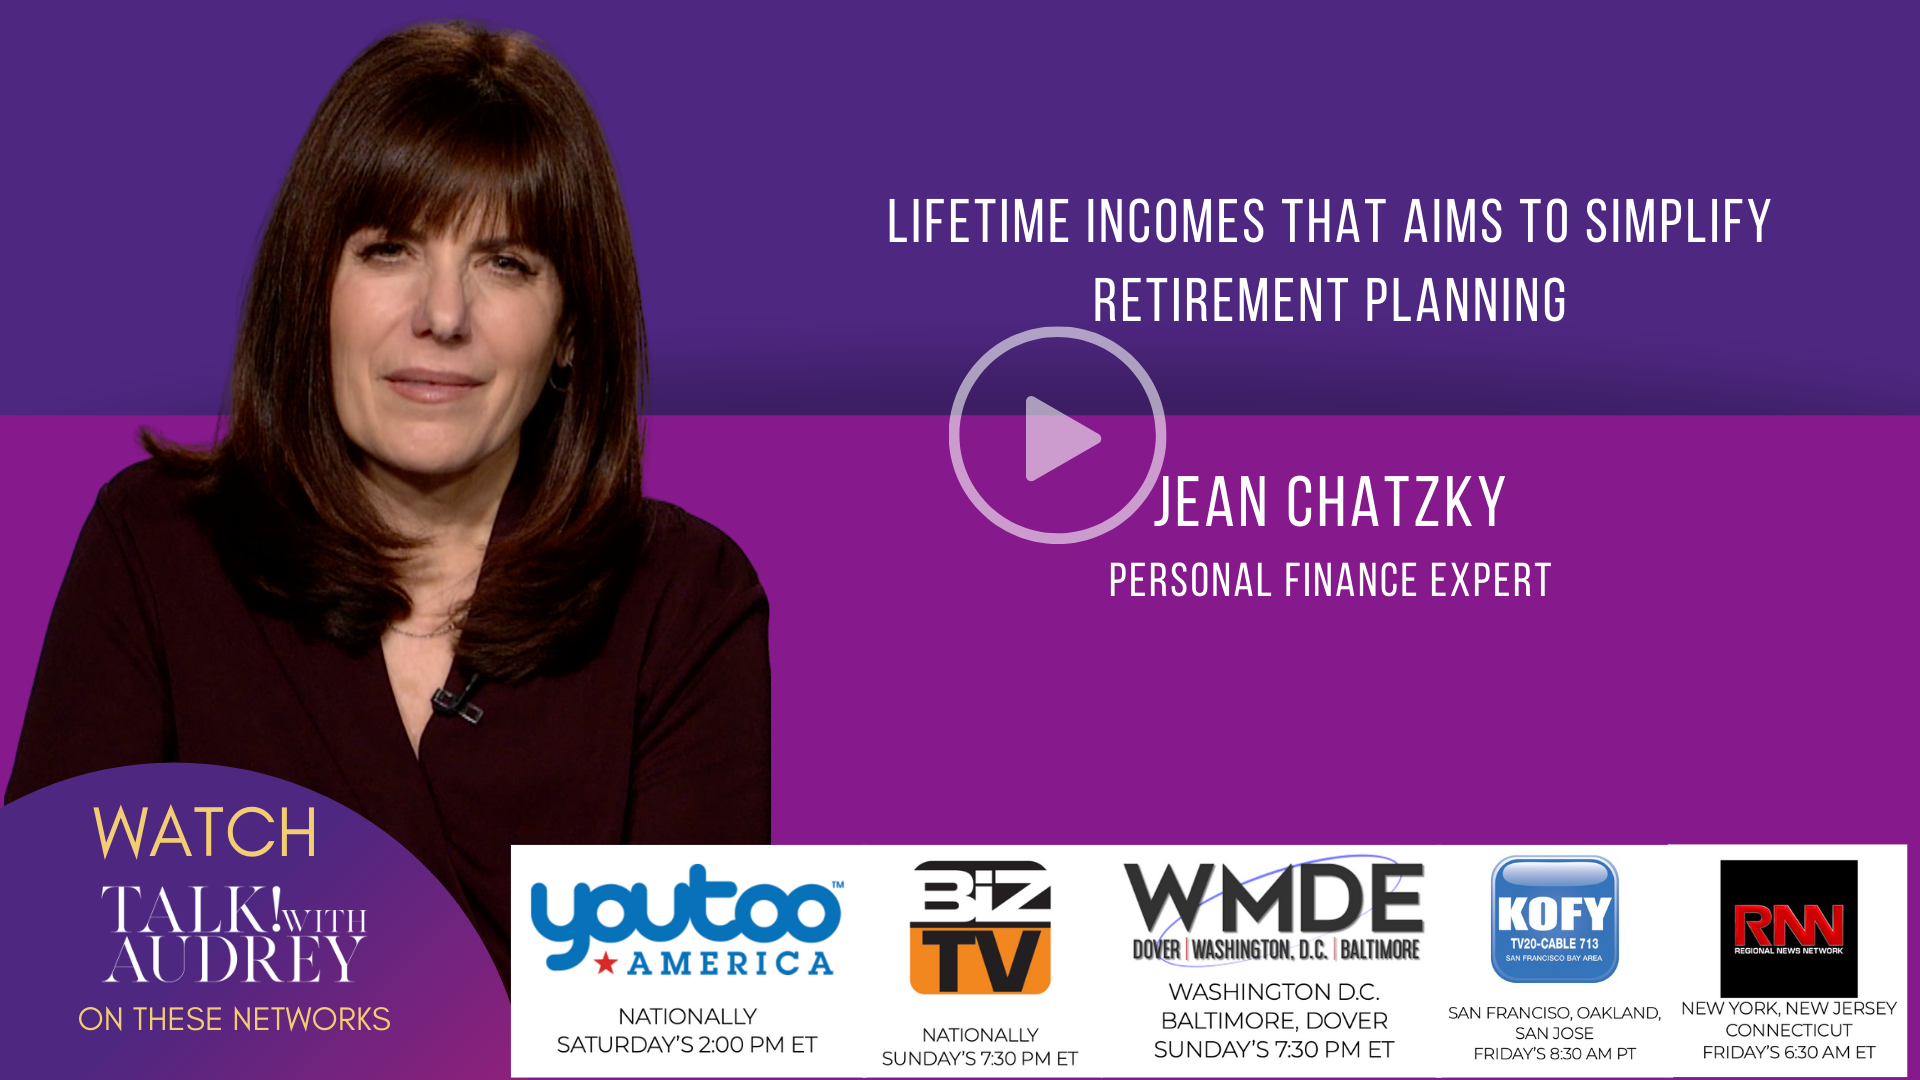 Lifetime Incomes That Aims To Simplify Retirement Planning – TALK! with AUDREY TV